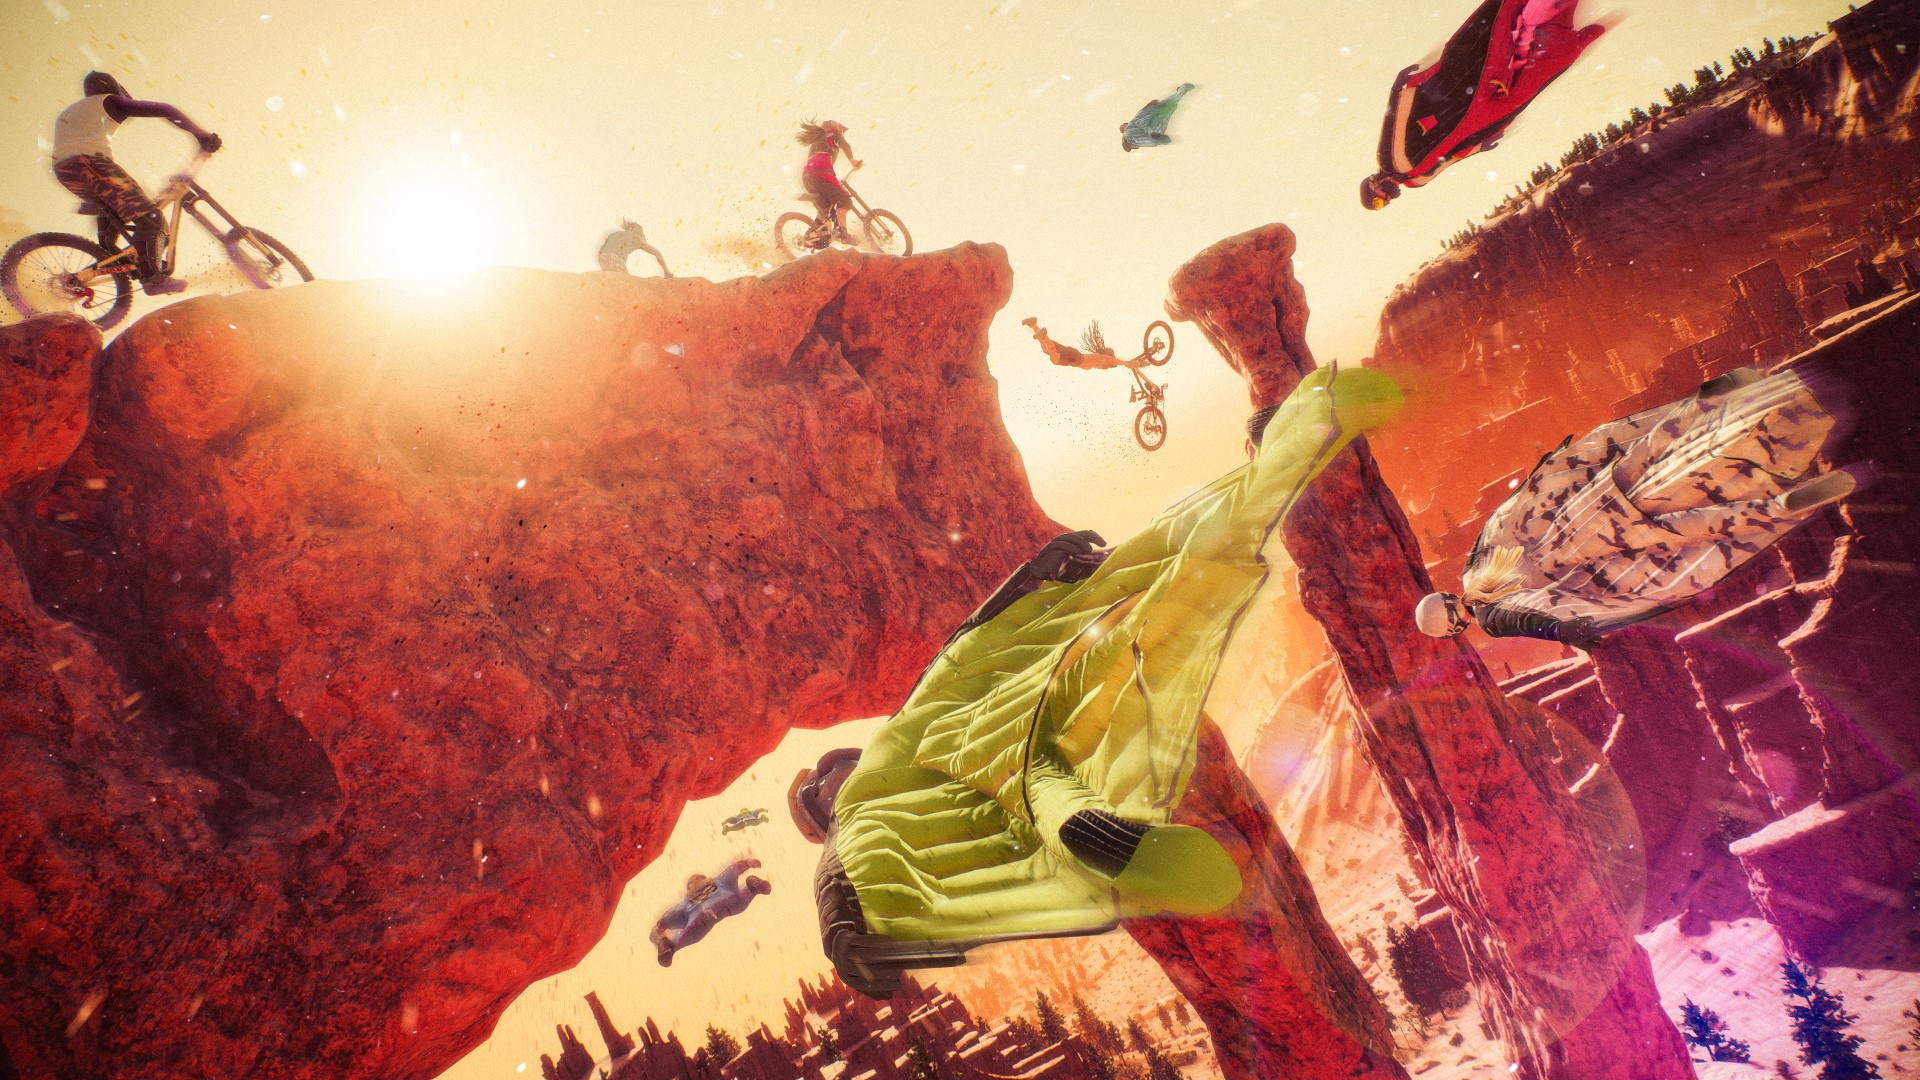 Riders Republic is holding a free PC Play Day ahead of its launch later this month